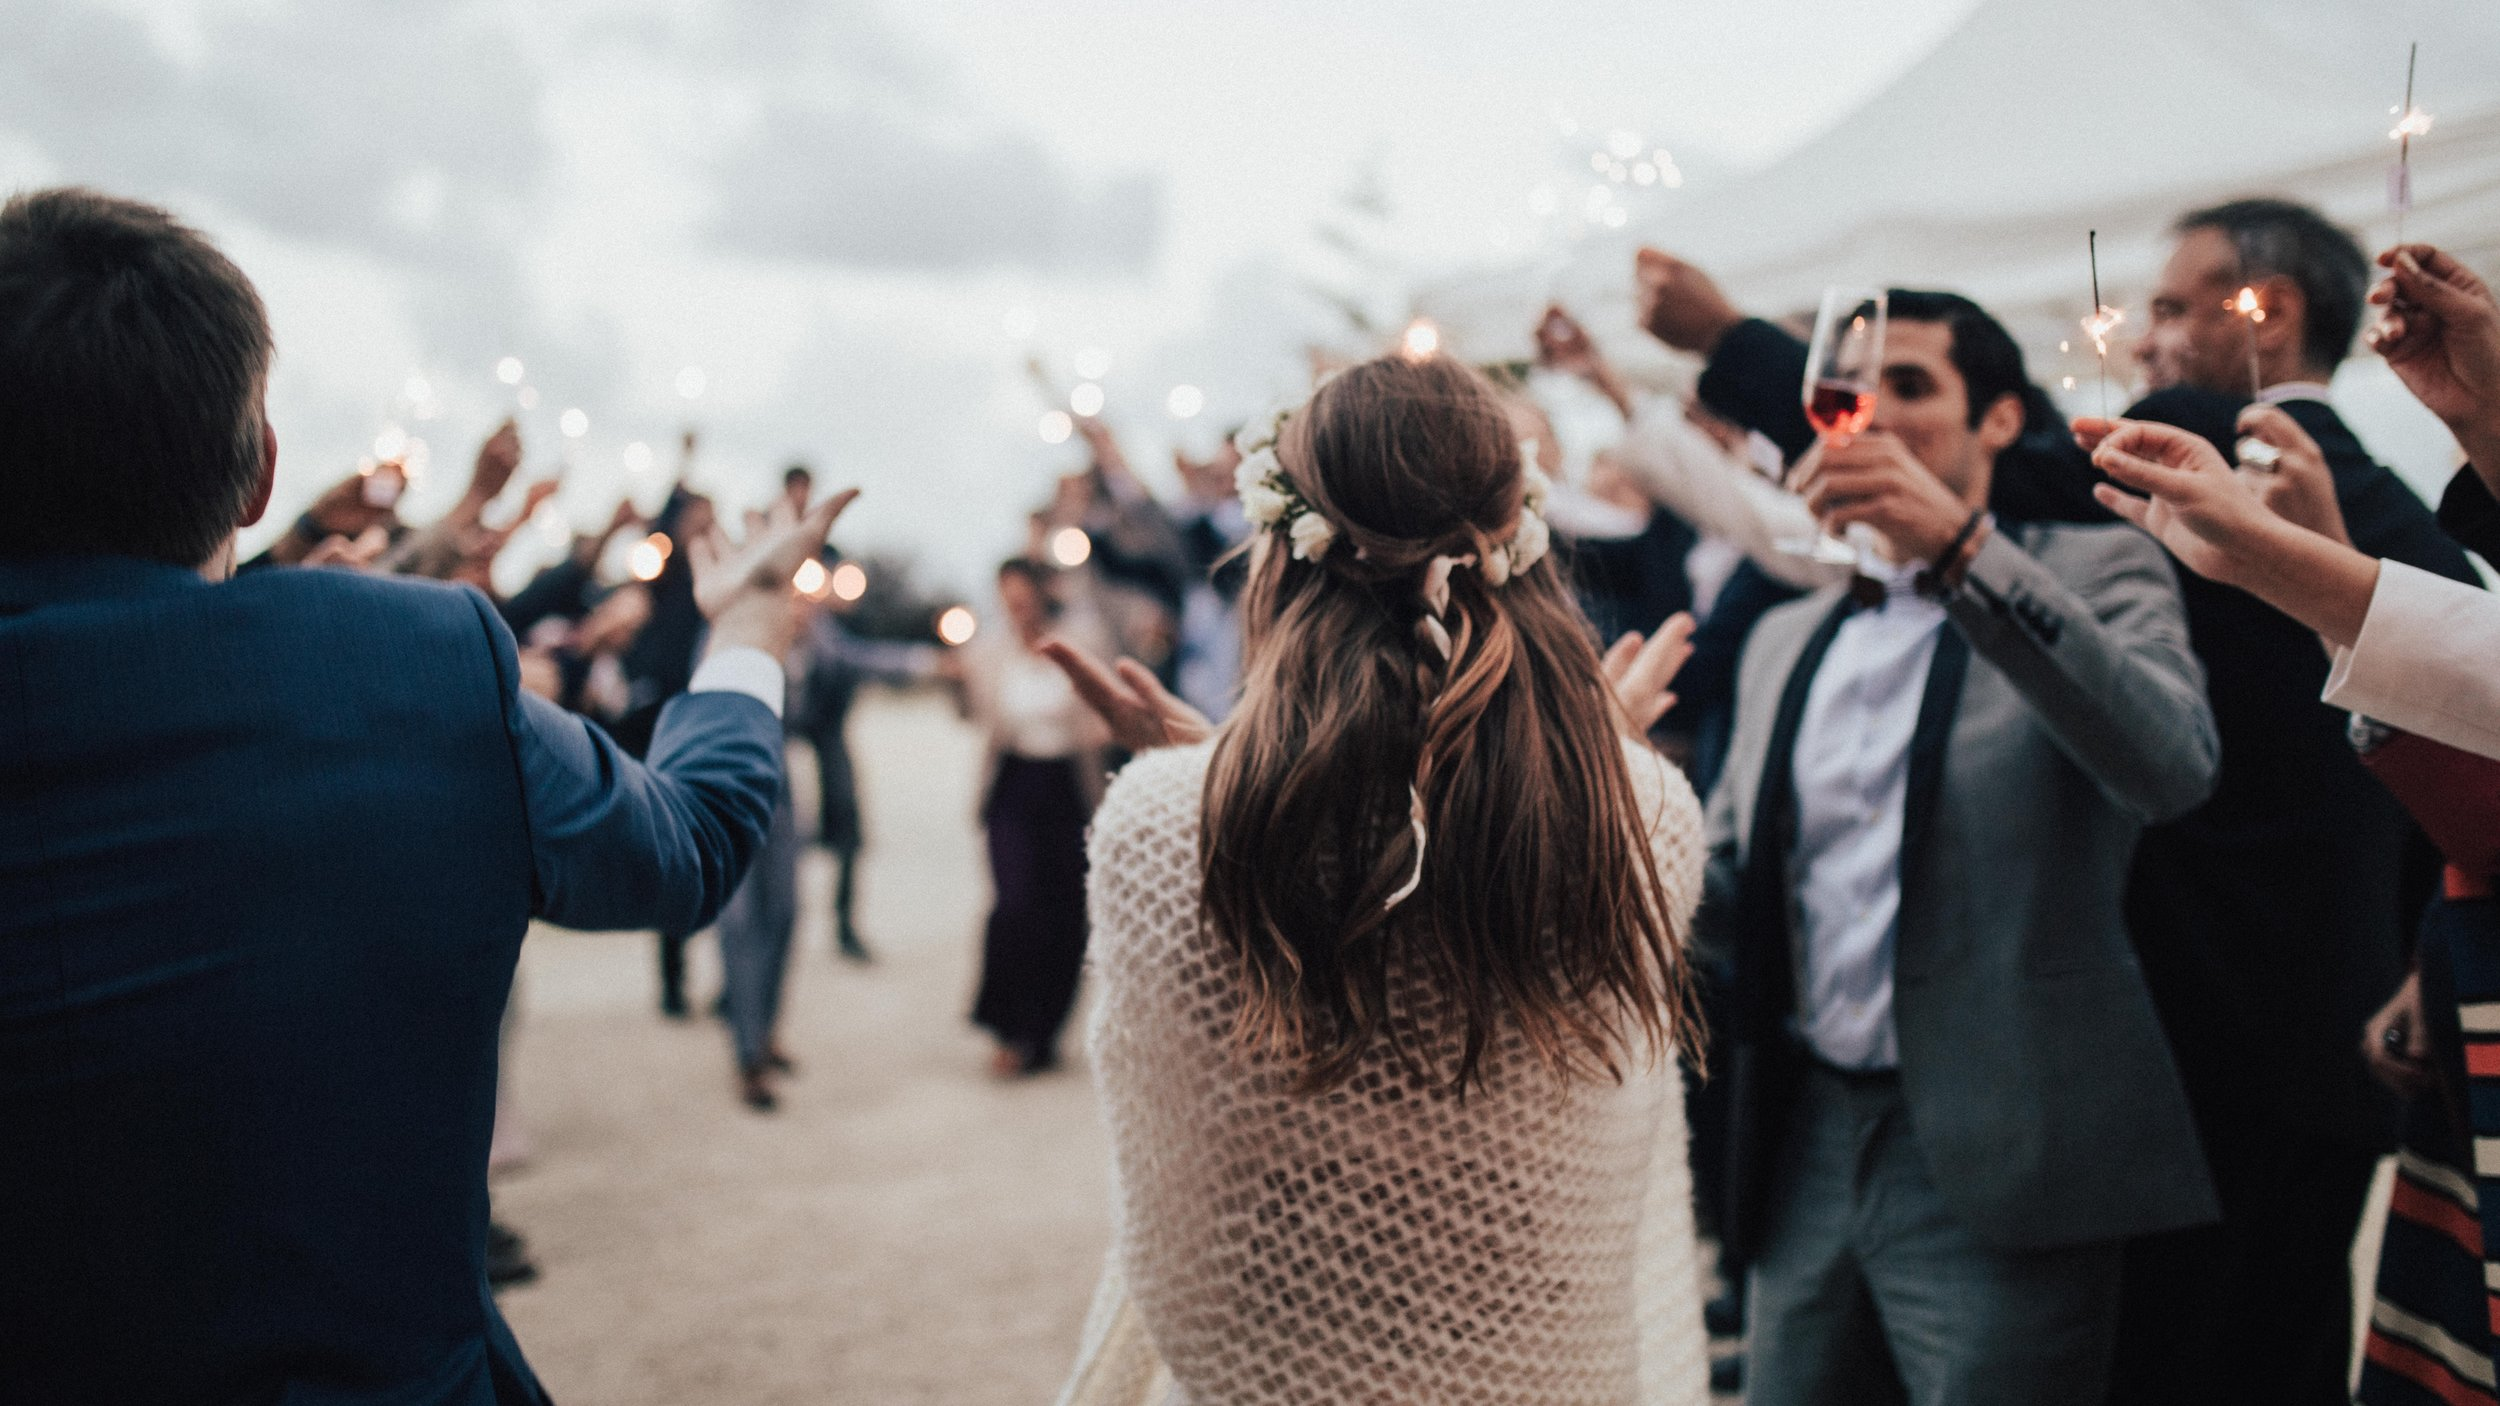 Our $999 Sunstone Deal is still available! - For a Very Limited time our 6 Hour Wedding Photography Package is only $999. That's right no strings, no tricks, no nonsense!Must book before April 1st!